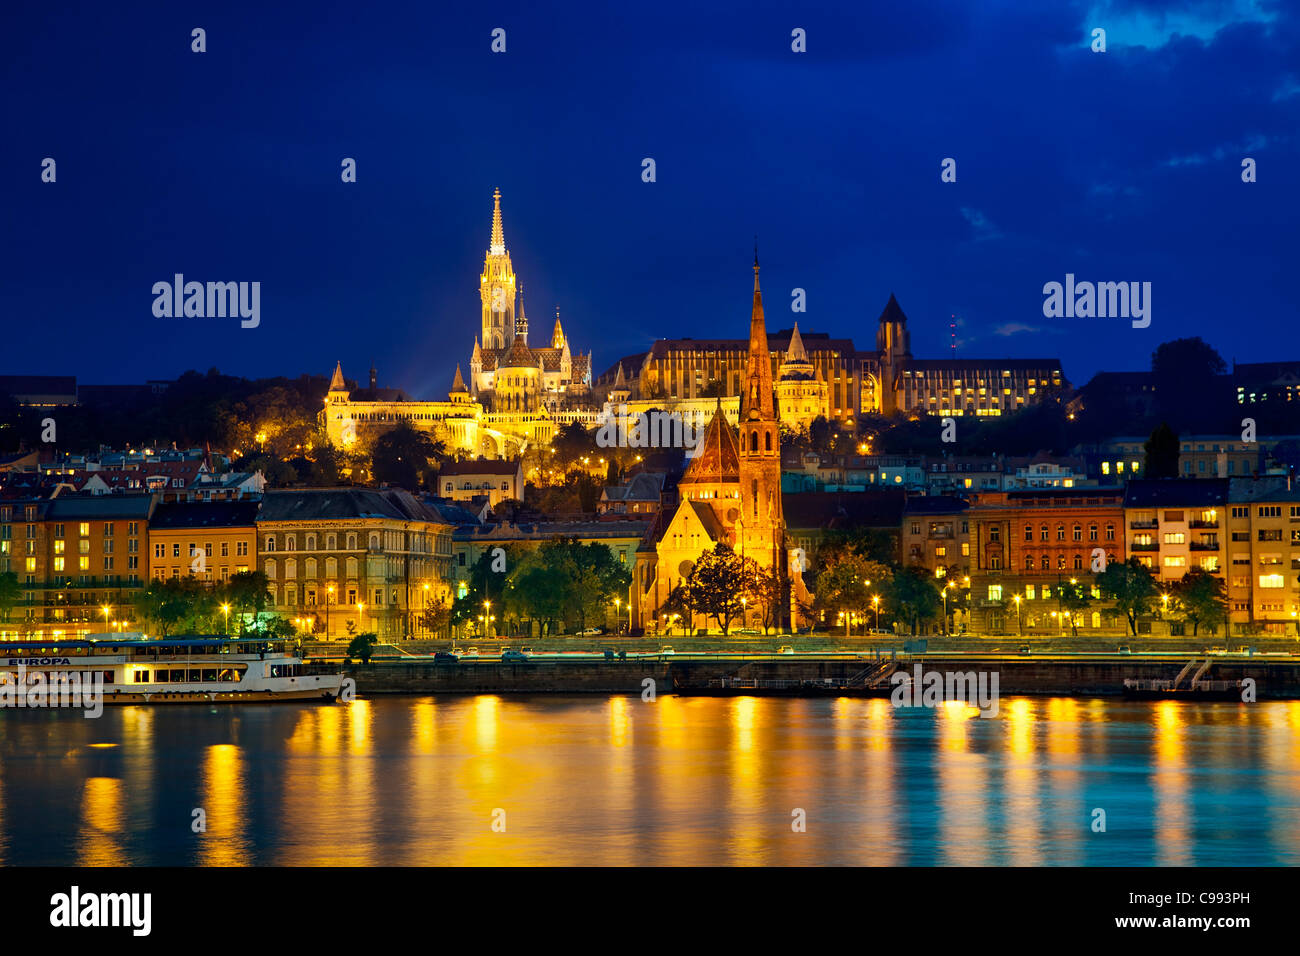 Europe, Europe central, Hungary, Budapest, Matthias Church and Calvinist Church at Night - Stock Image